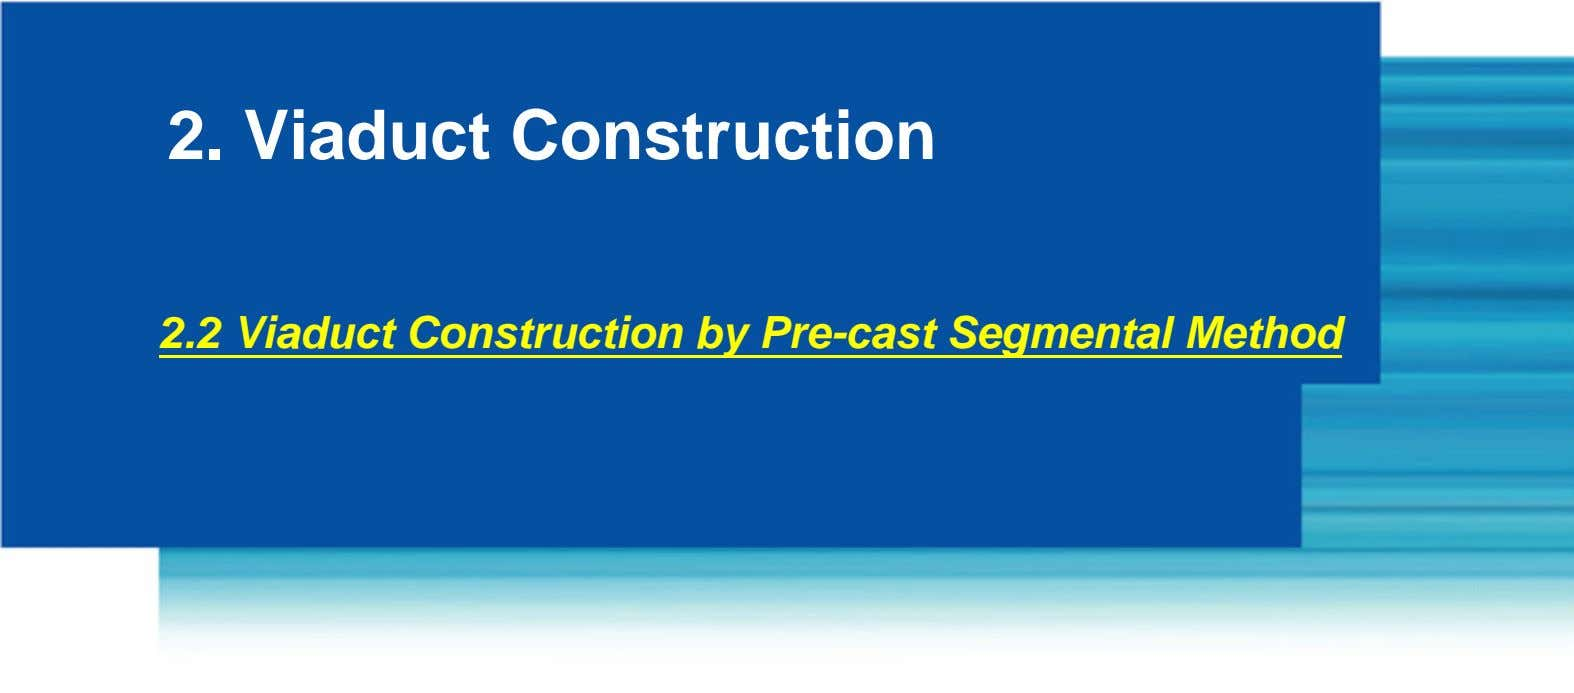 2. Viaduct Construction 2.2 Viaduct Construction by Pre-cast Segmental Method